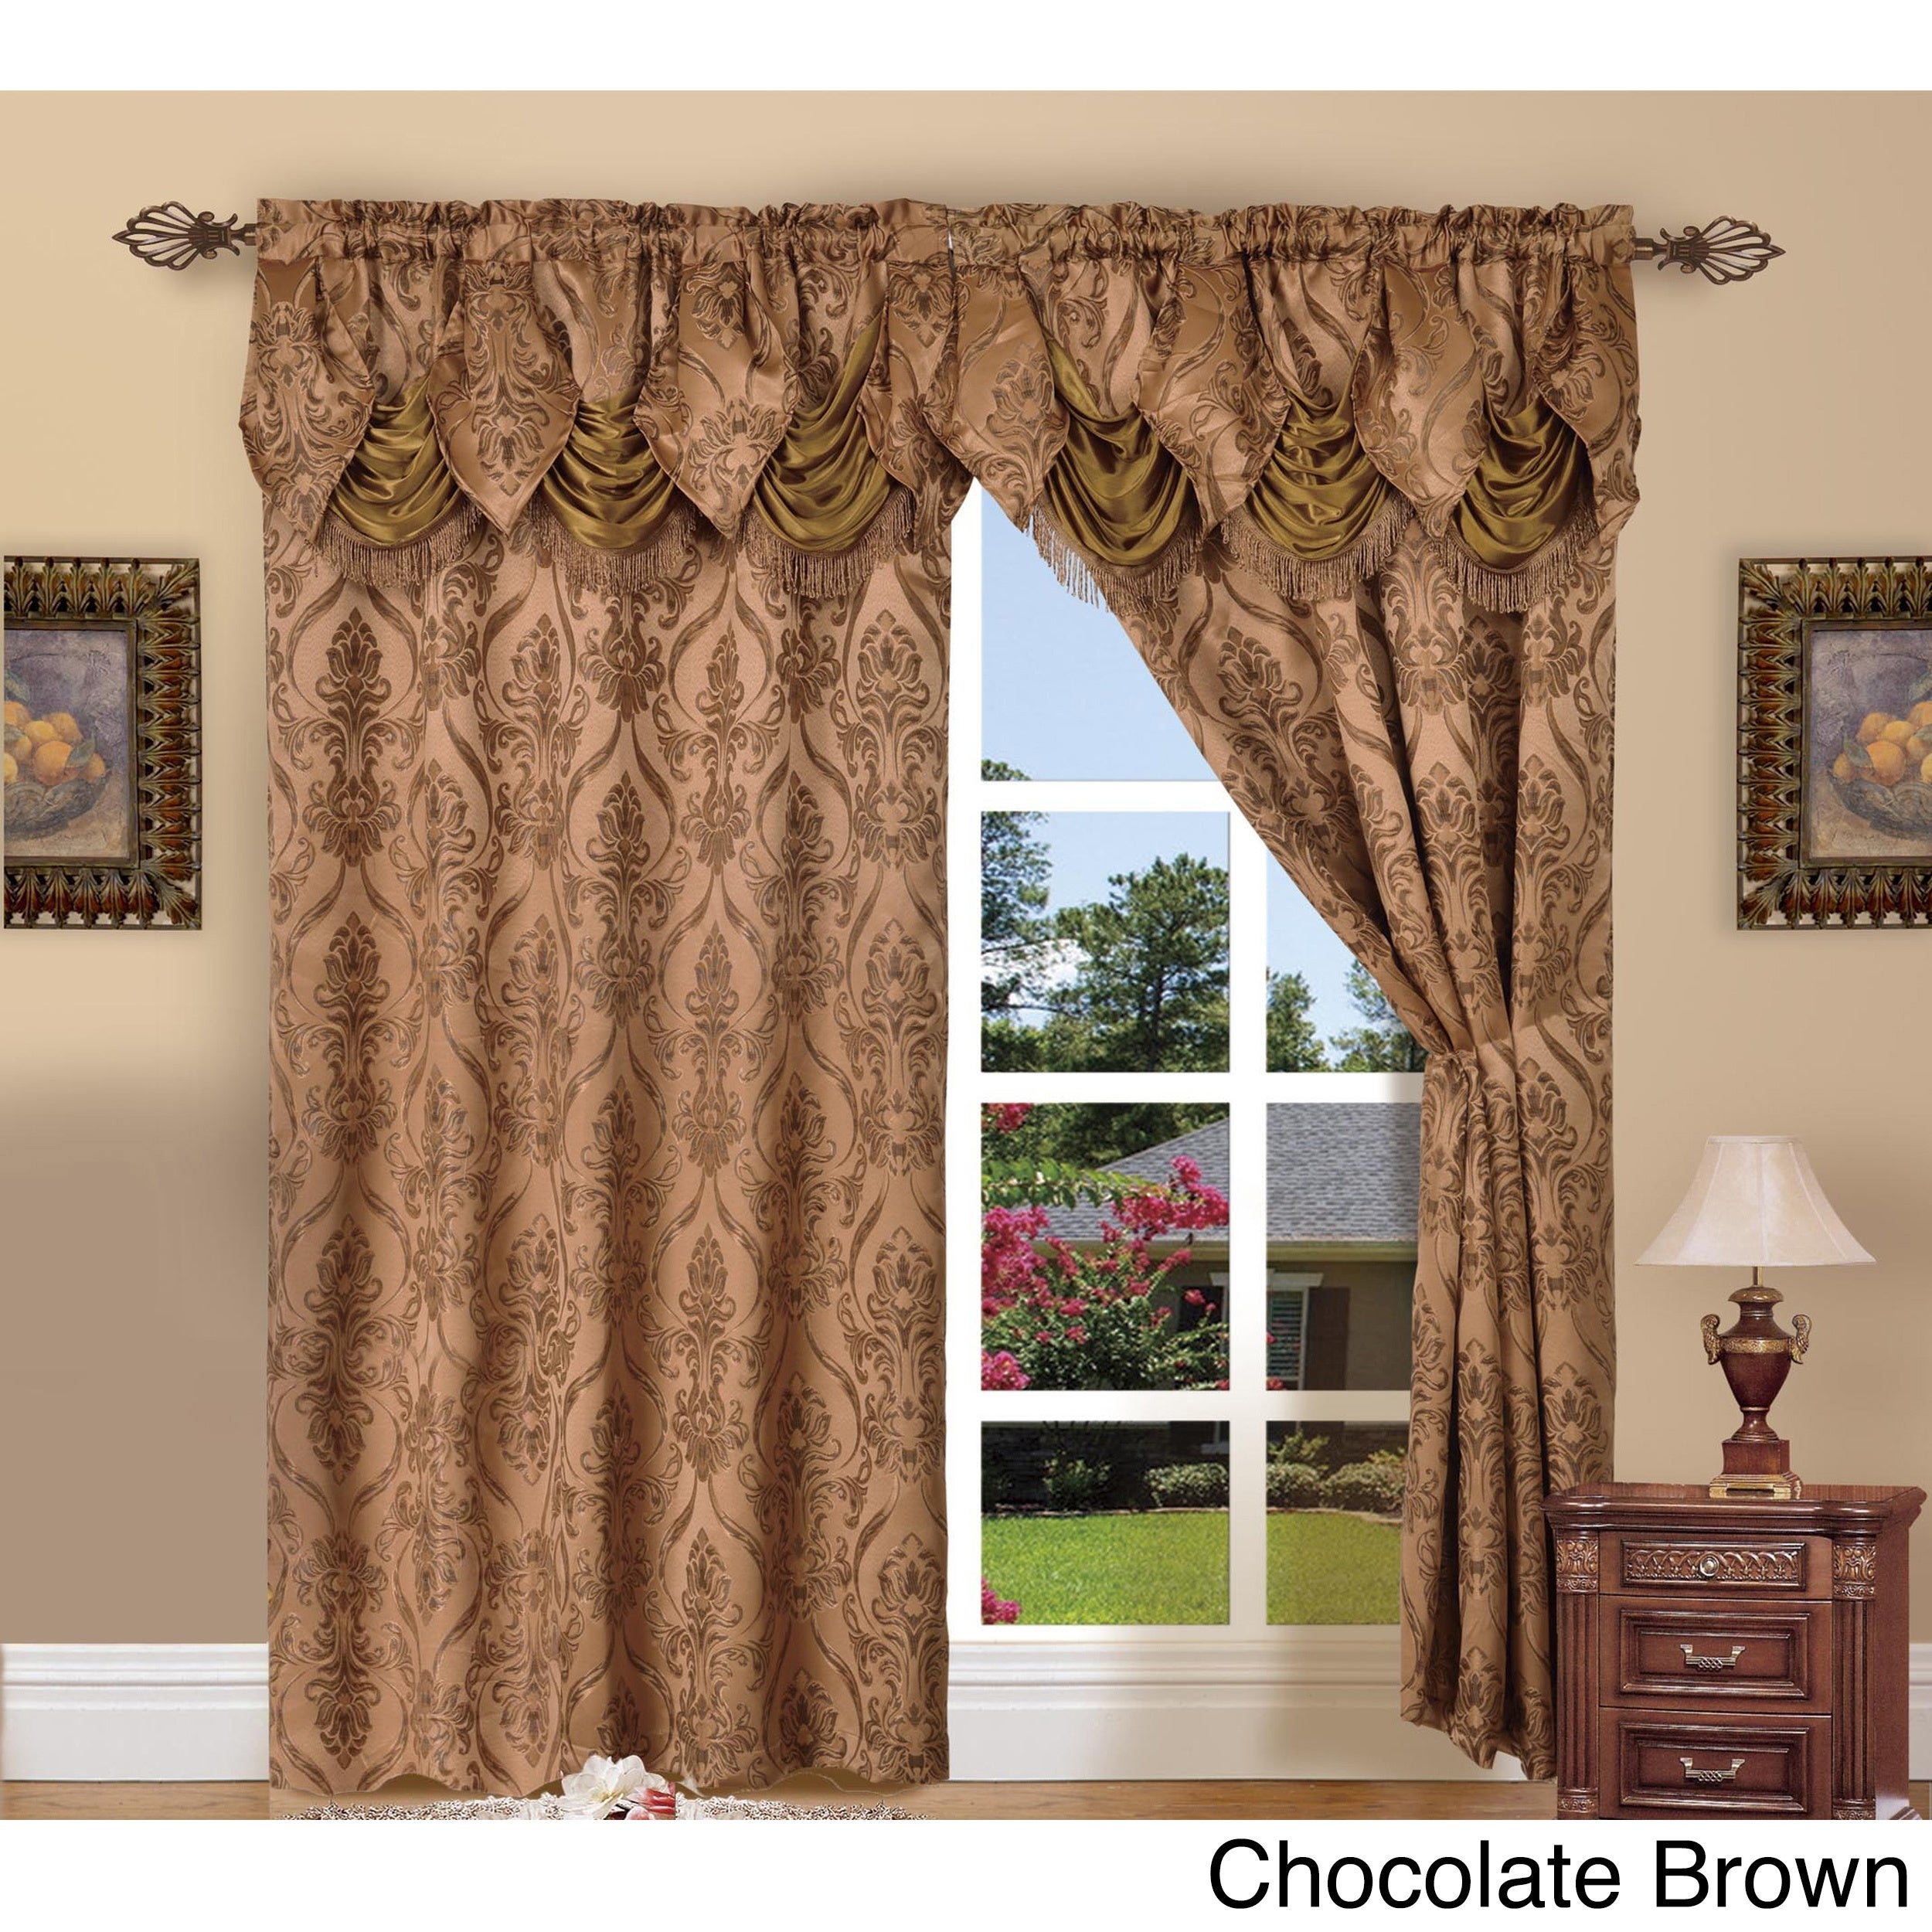 Elegant Comfort Luxury Penelopie Jacquard 84 Inch Length Window Curtain Panel Pair Intended For Elegant Comfort Luxury Penelopie Jacquard Window Curtain Panel Pairs (View 2 of 20)